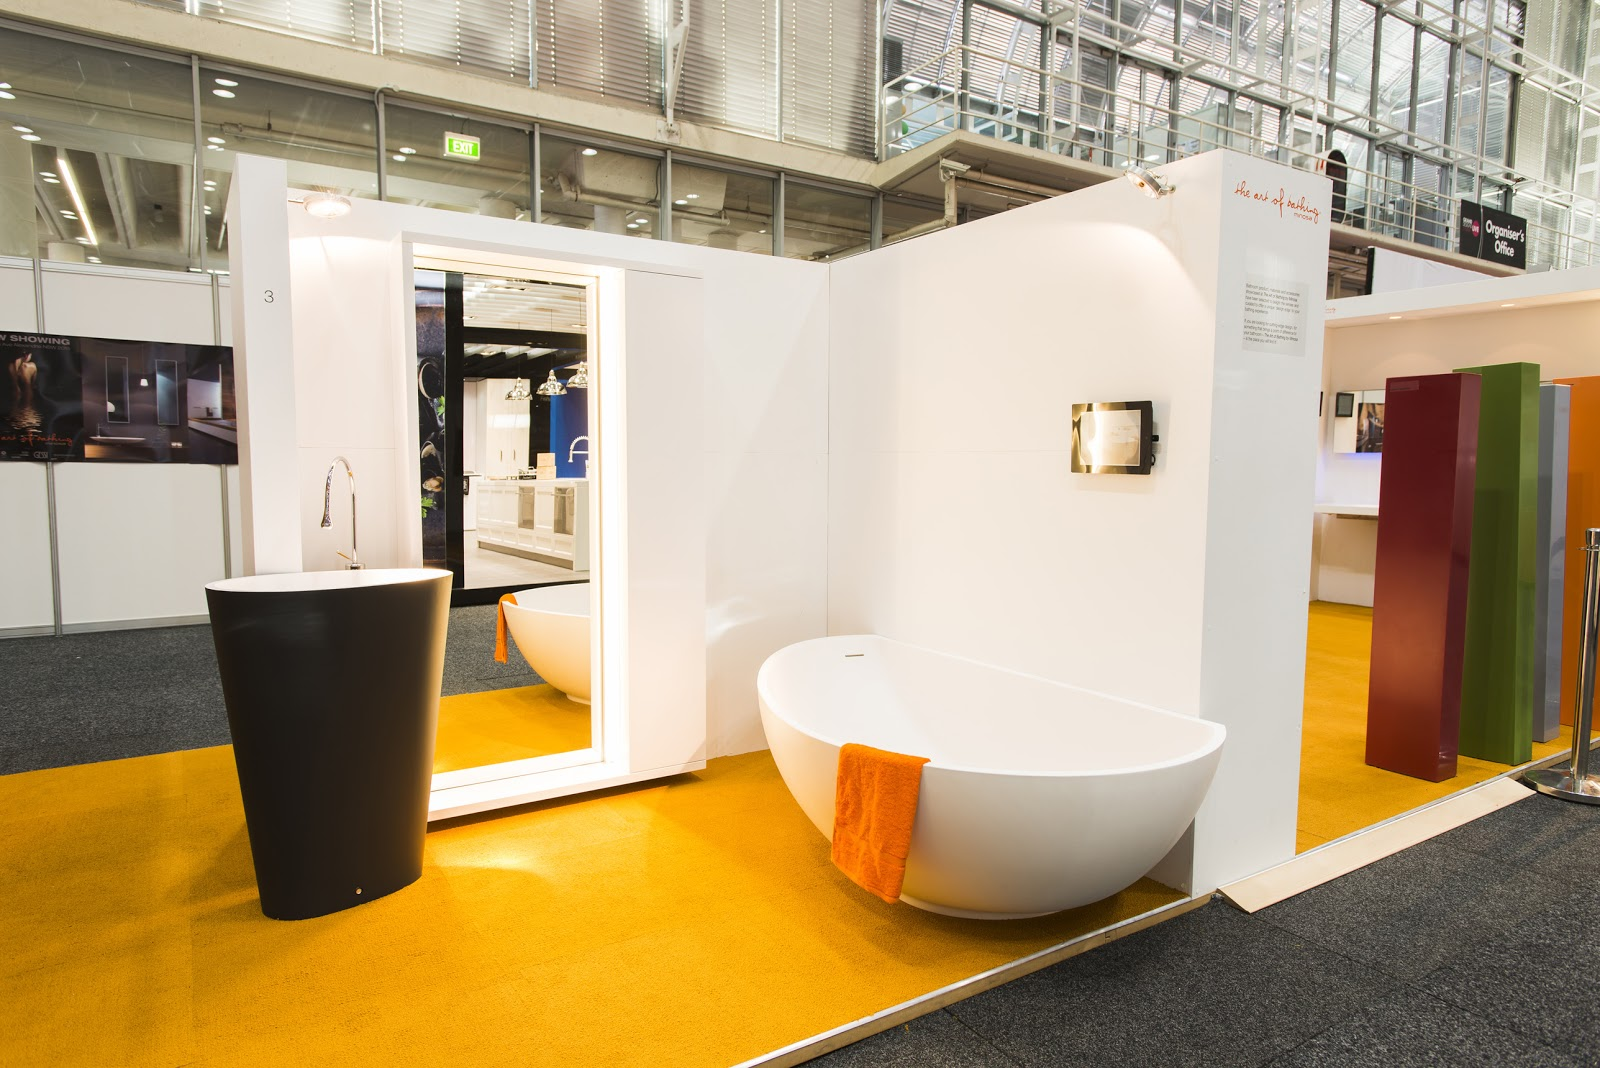 Minosa new minosa bathroom design resort style ensuite - Introduces The All New Body Freestanding Washbasin And The Vanity Back To Wall Bath Proving That Geometry In Bathroom Design Can Influence Emotion And